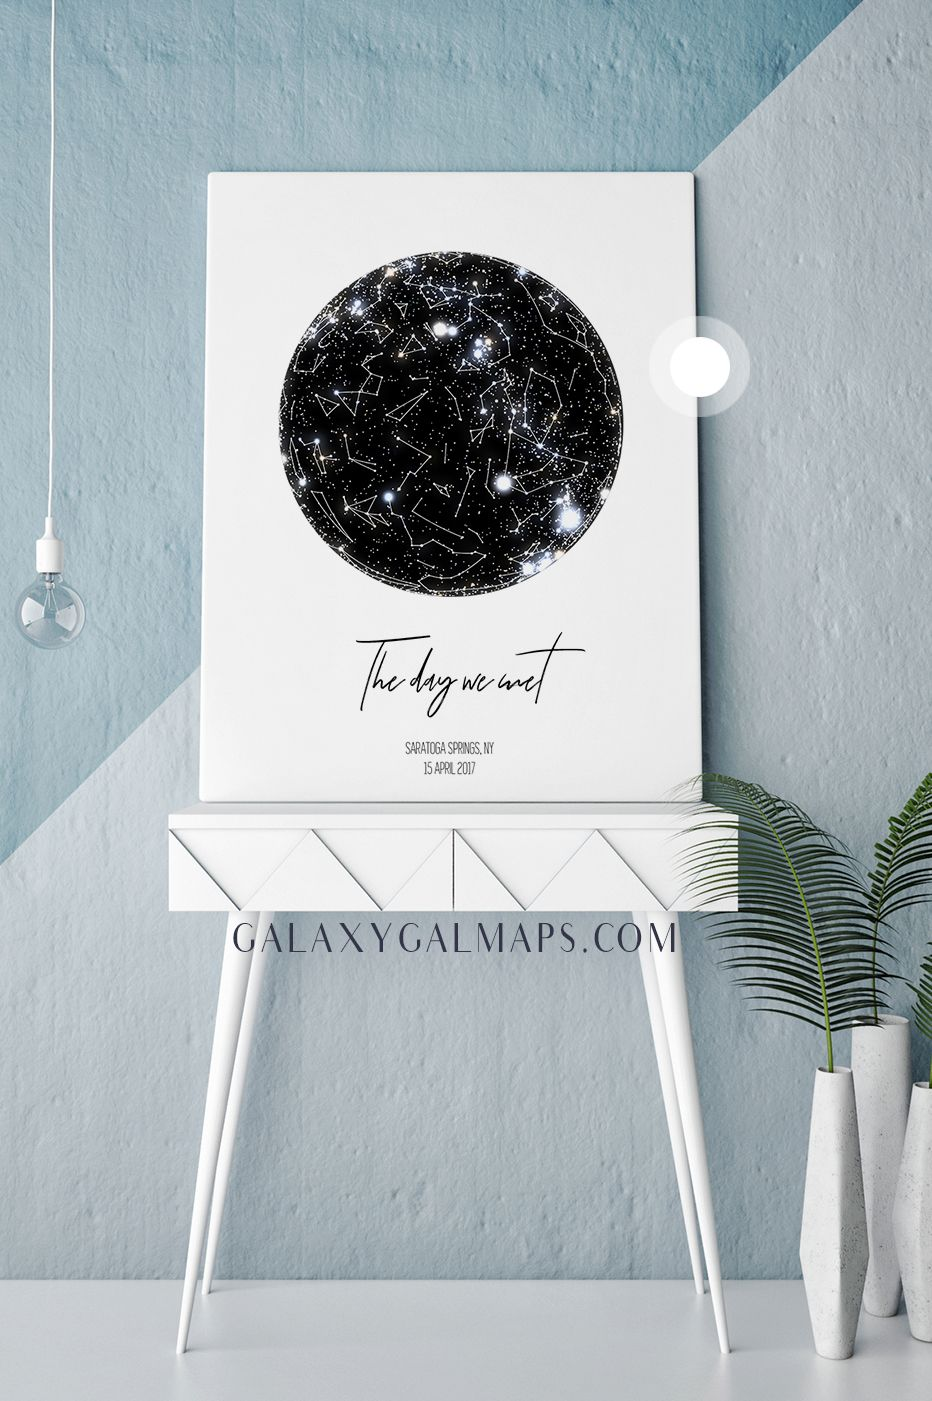 Personal star map by date and location world travel map canvas personal star map by date and location world travel map canvas world map poster push gumiabroncs Gallery